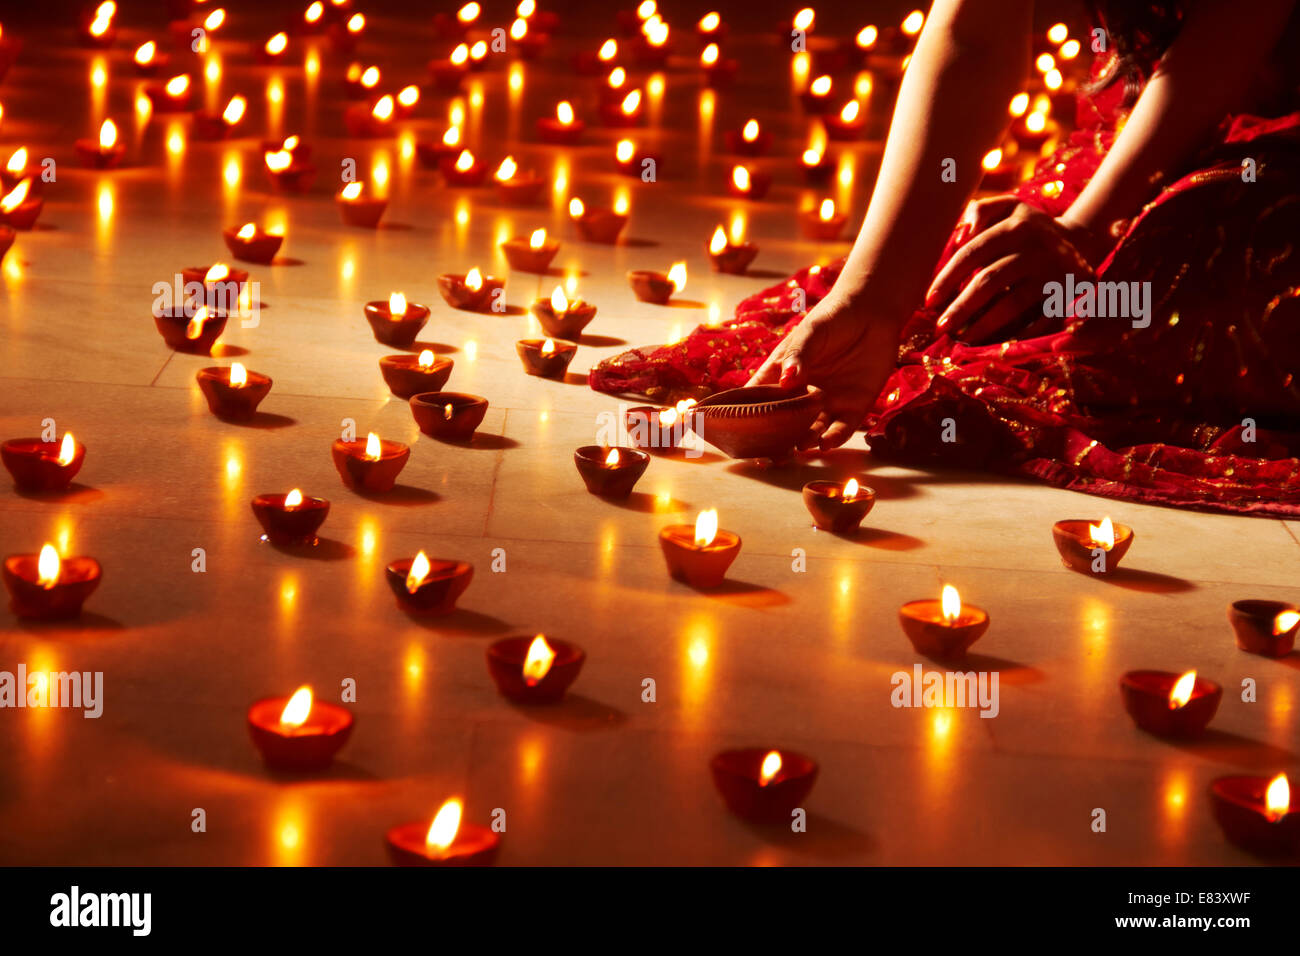 Indian Festival Diwali Decoration Stock Photo Royalty Free Image 73845675 Alamy